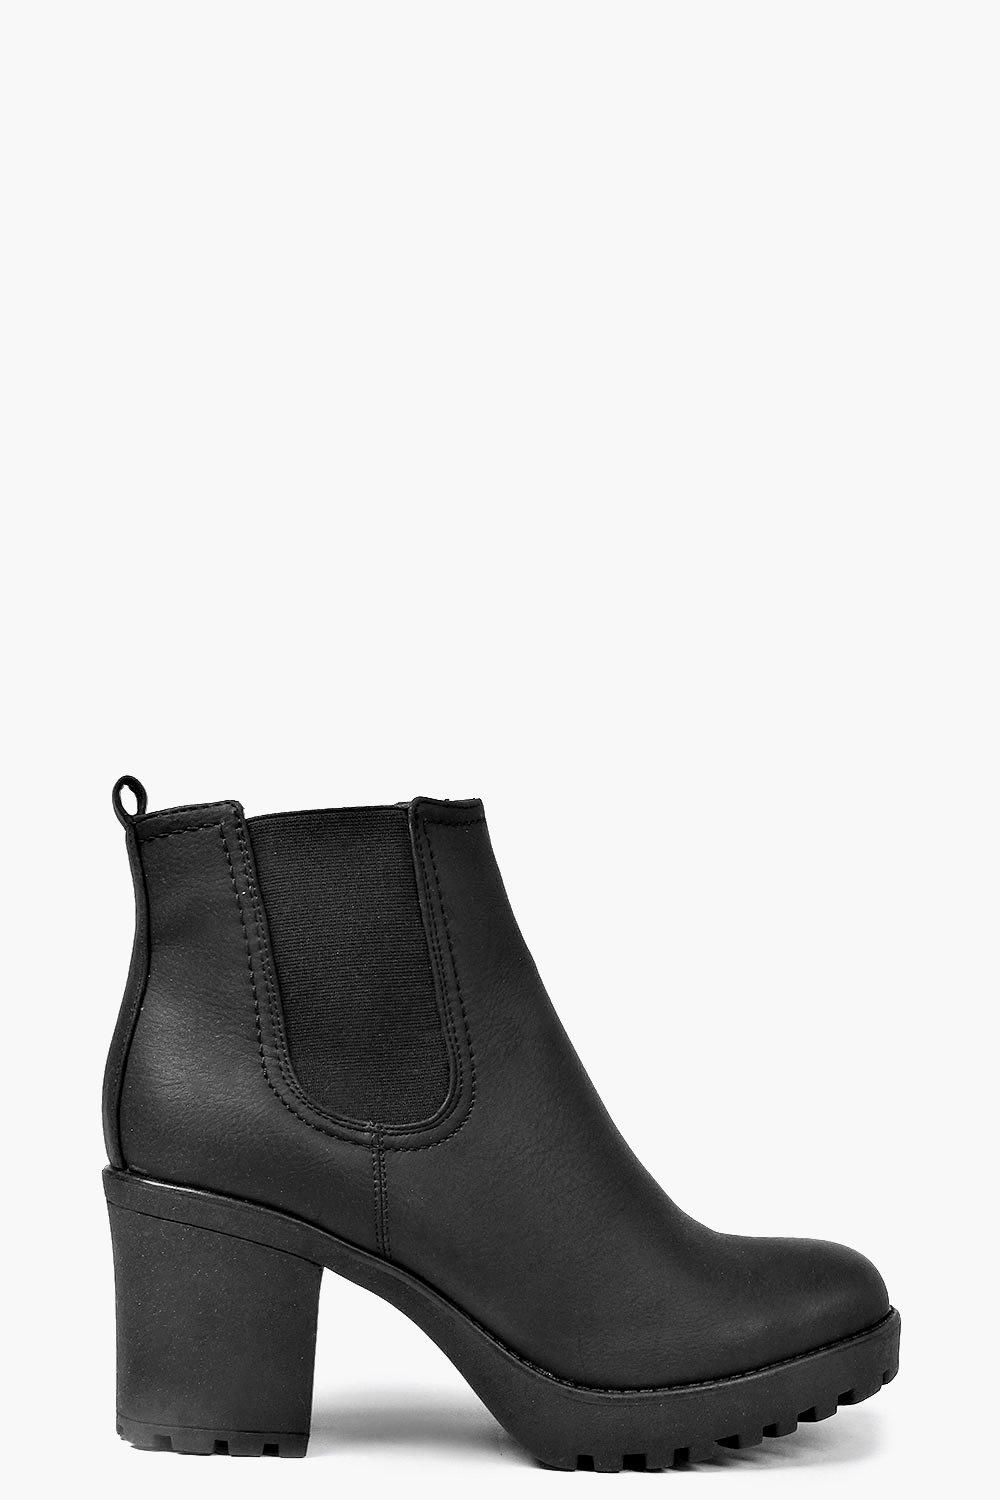 ea16cb20973 Boots are a basic in every shoe collection Ankle boots are the all-rounder  that s always on the style agenda